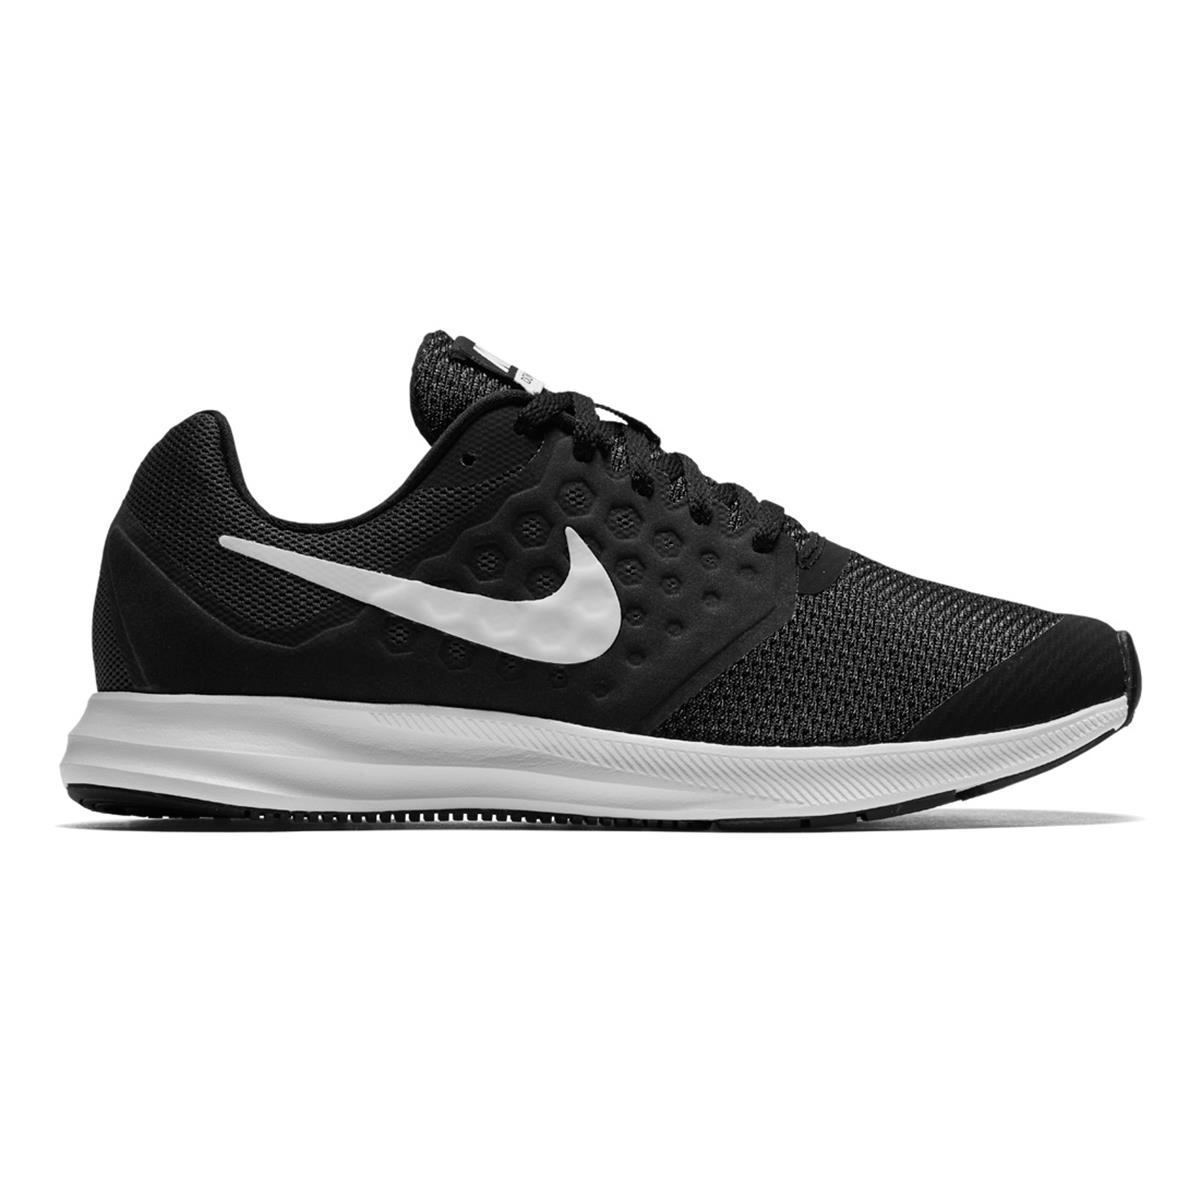 info for 7f725 d3697 Nike Downshifter 7 GS Junior Running Shoes